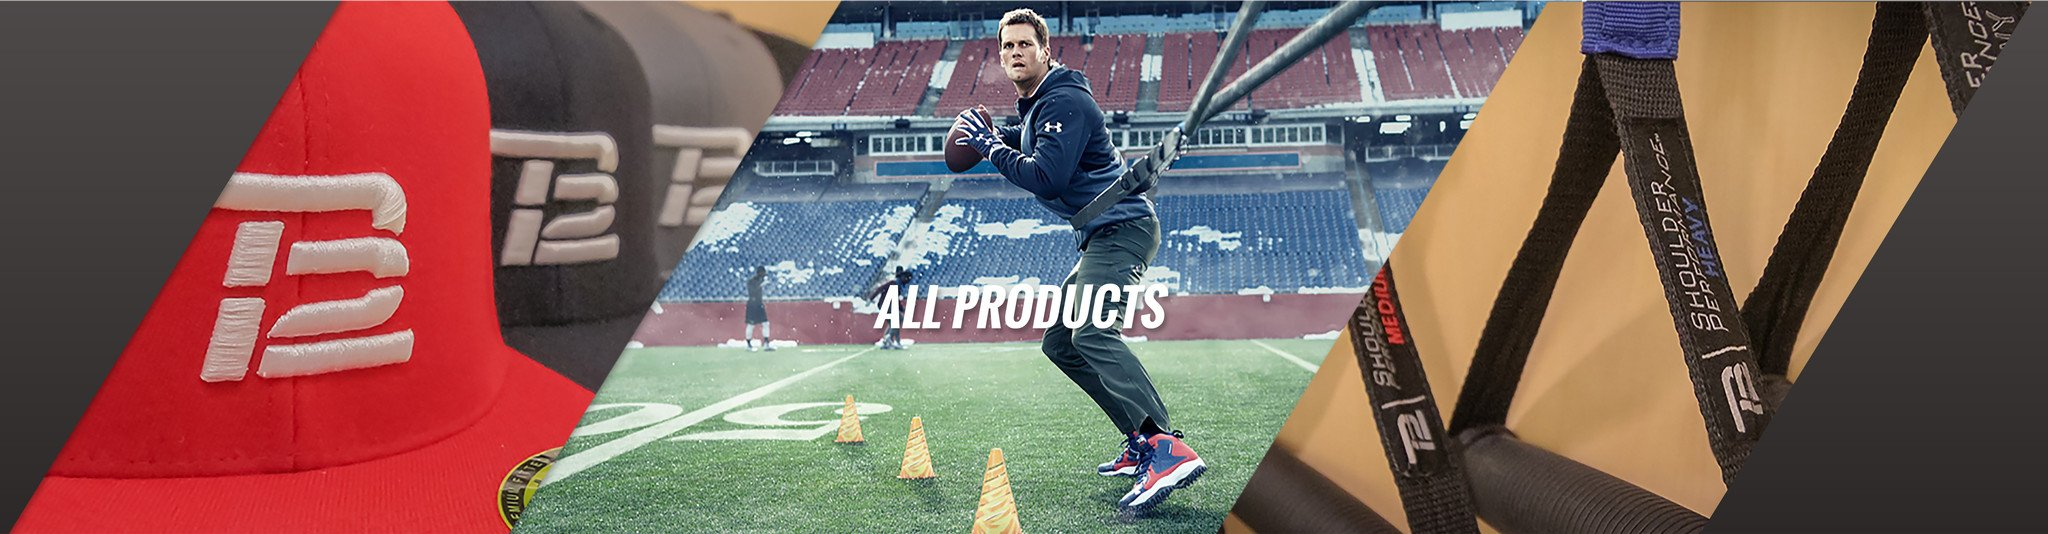 TB12 All Products